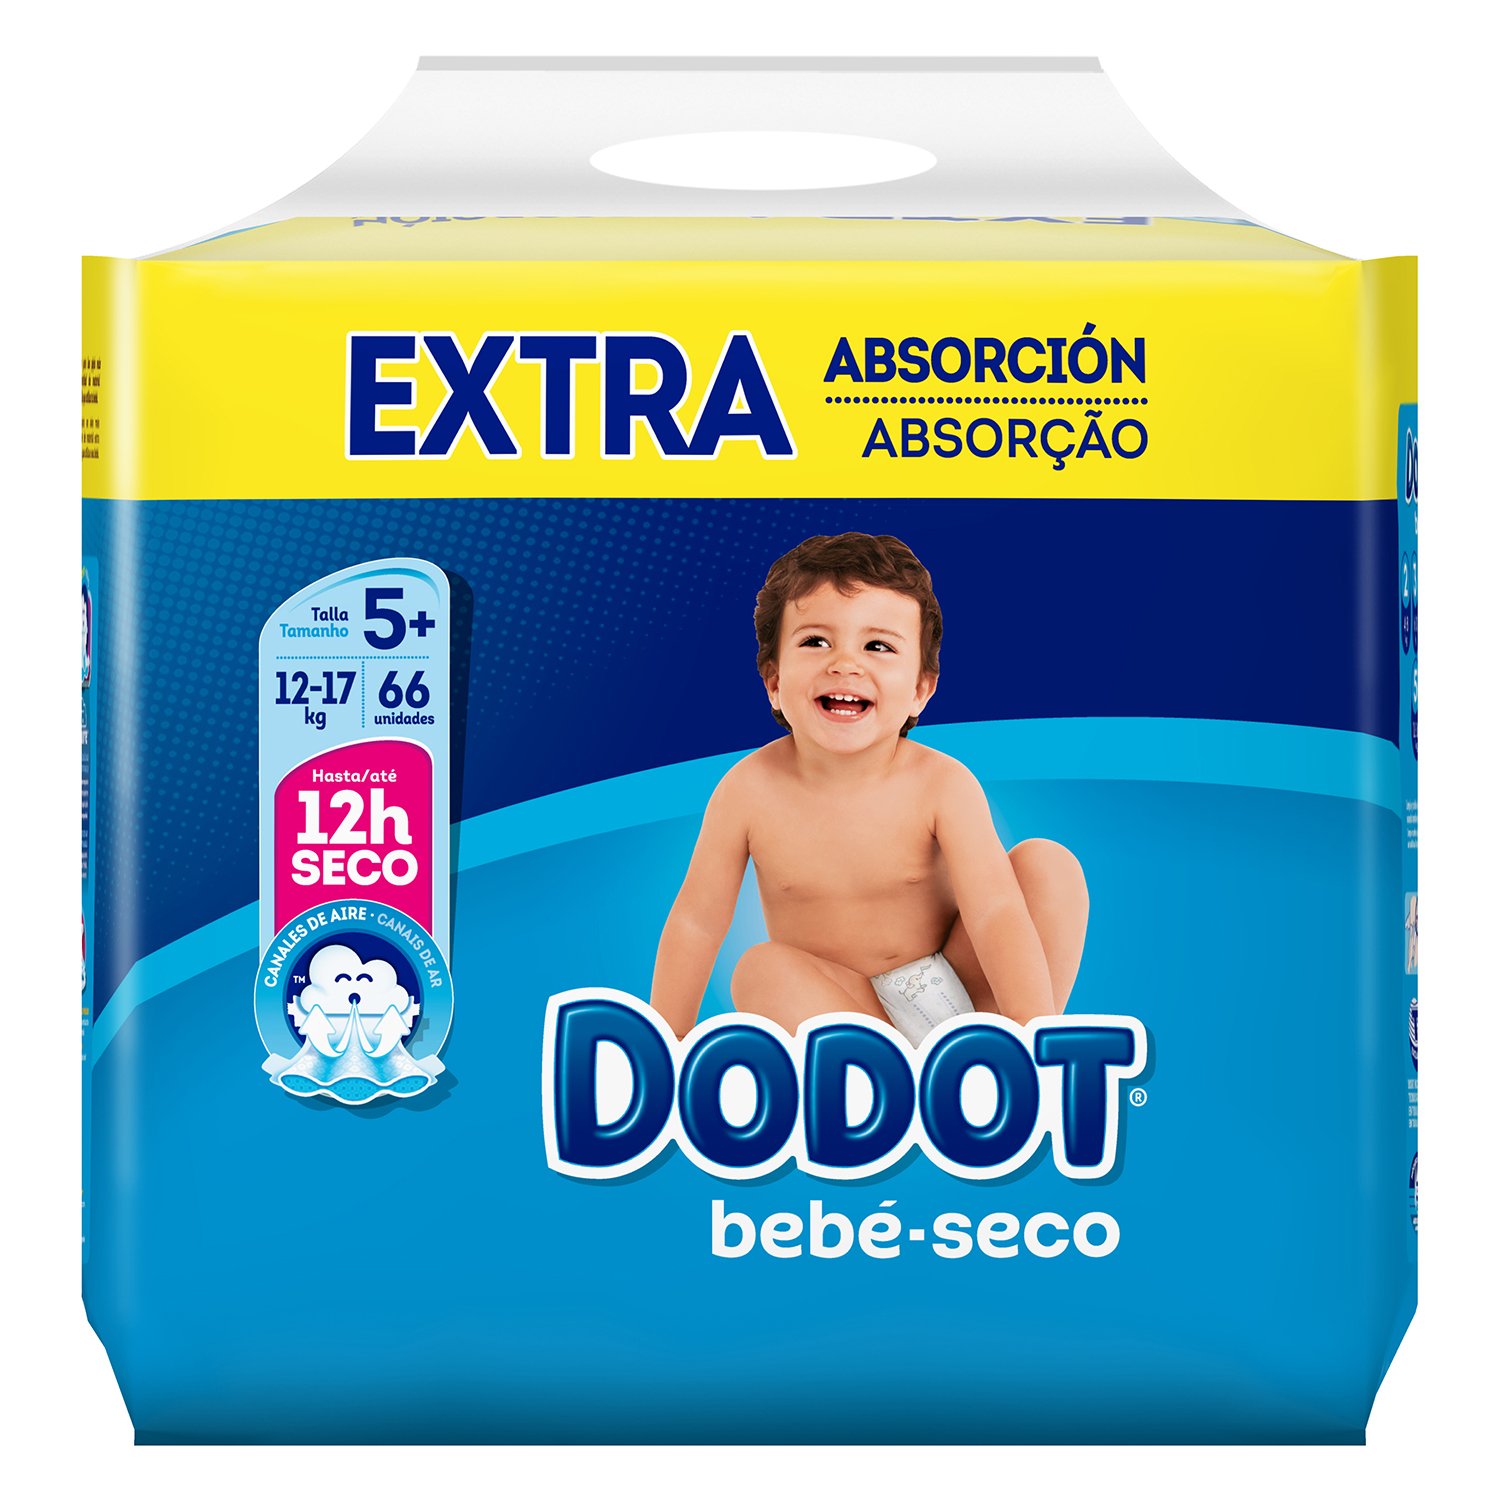 Pañales Dodot extra absorción T5+ (12kg-17kg.) 66 ud.